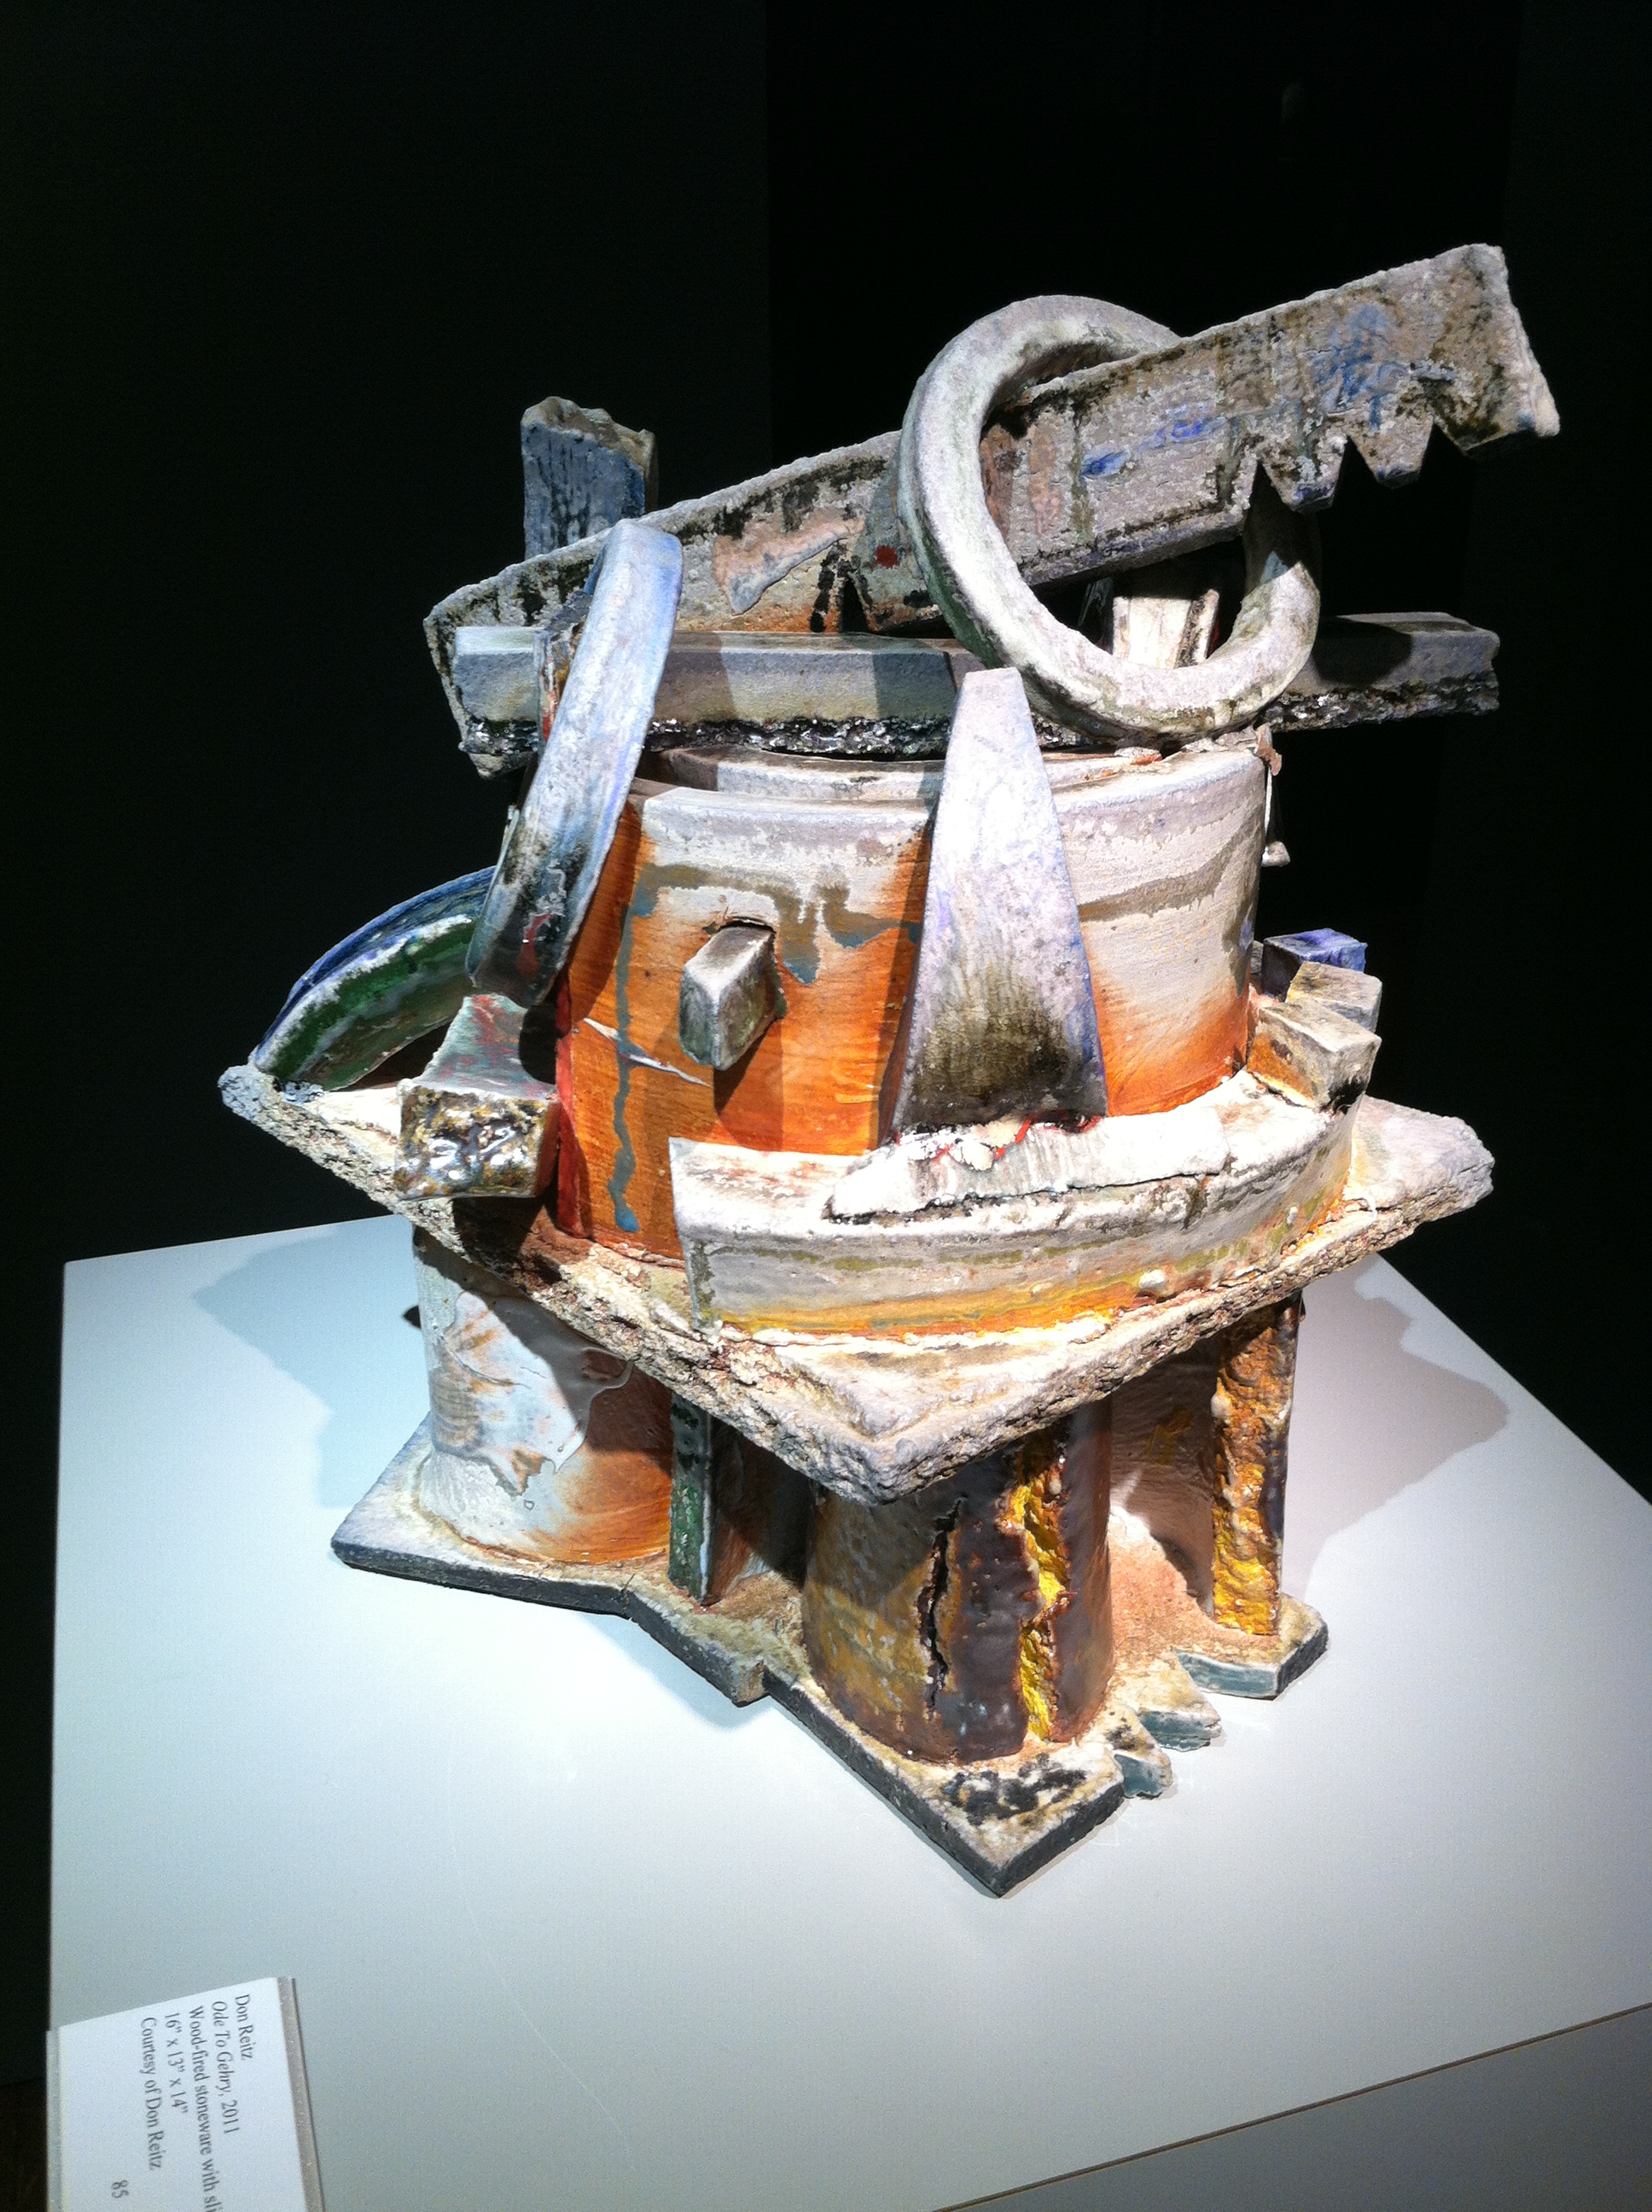 Ode To Gehry, 2011